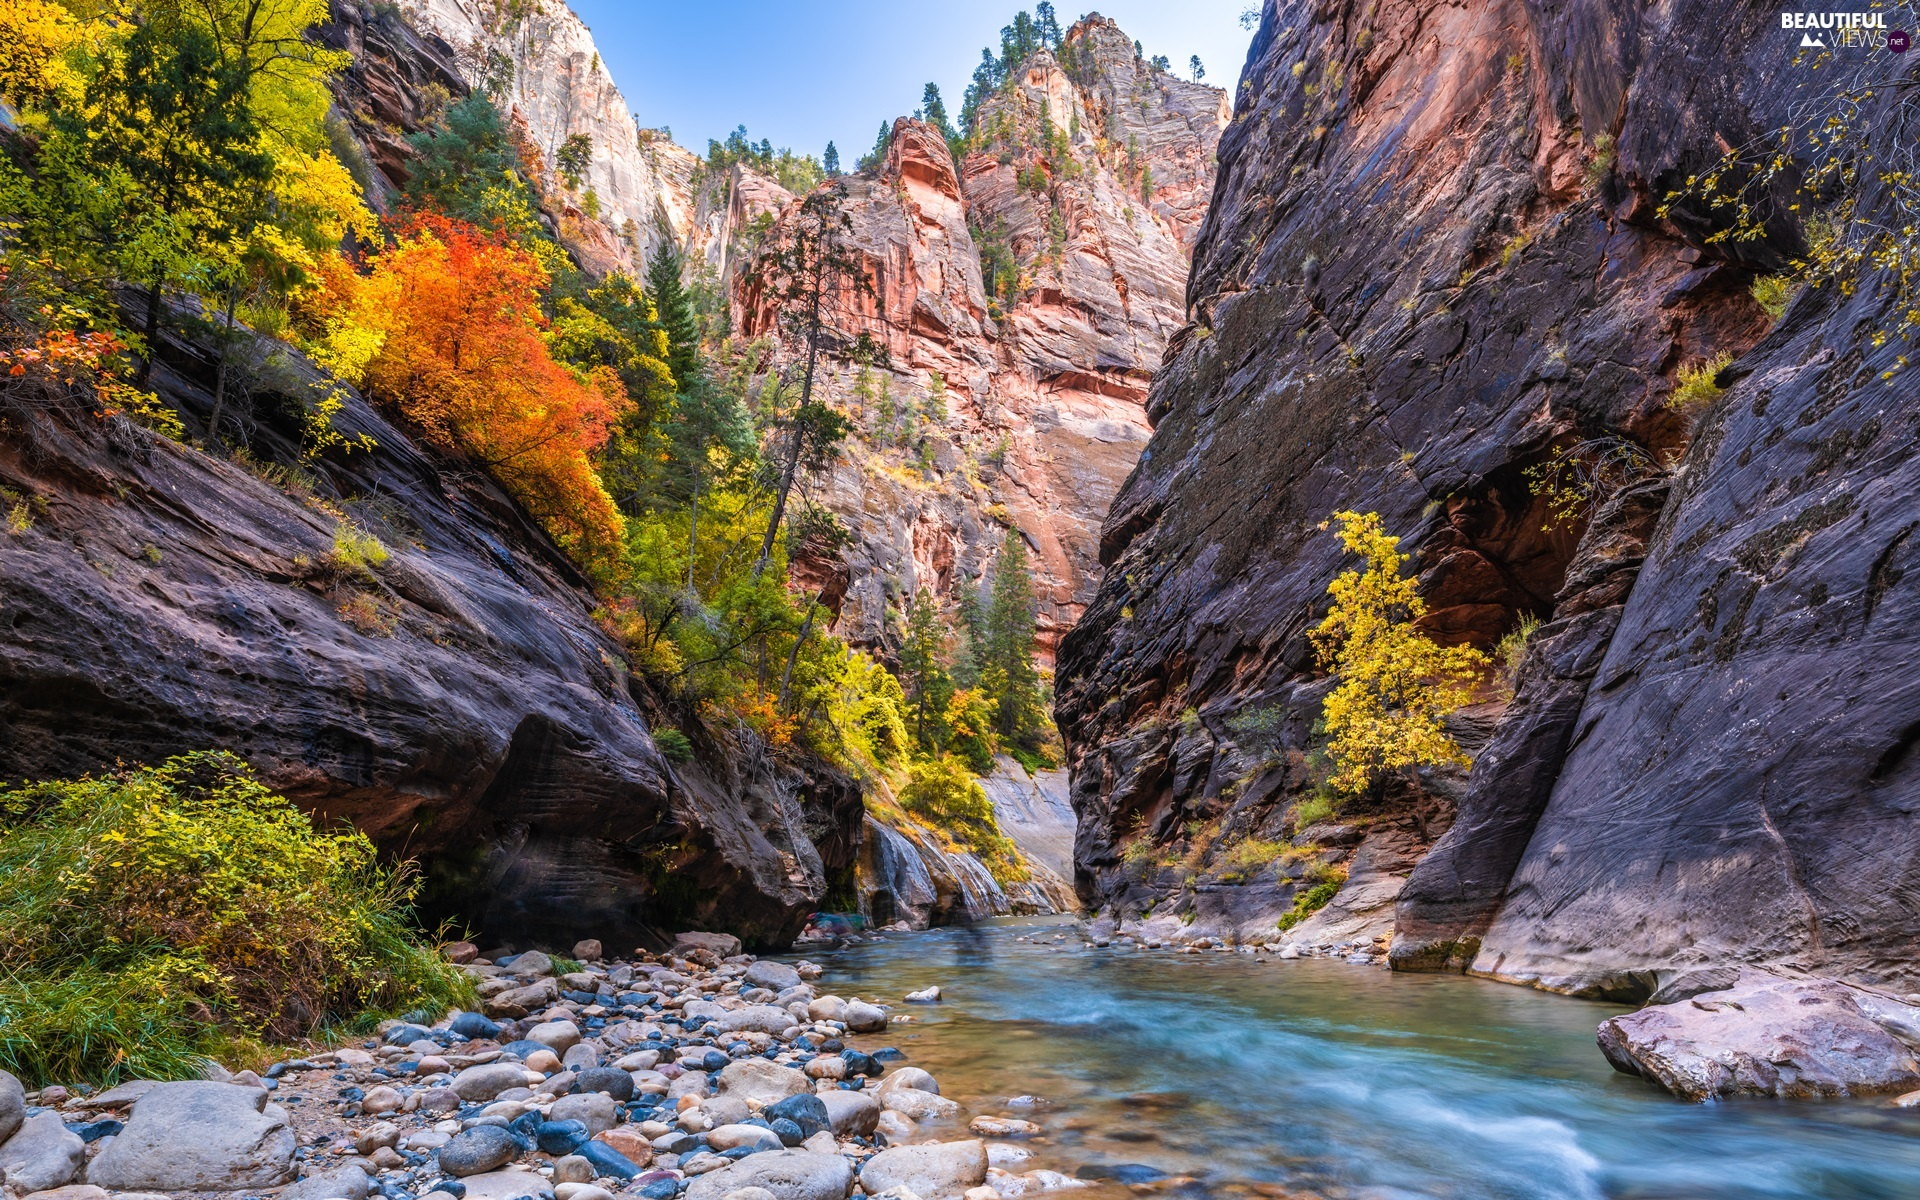 Zion Narrows Canyon, Utah State, VEGETATION, Zion National Park, The United States, rocks, Virgin River